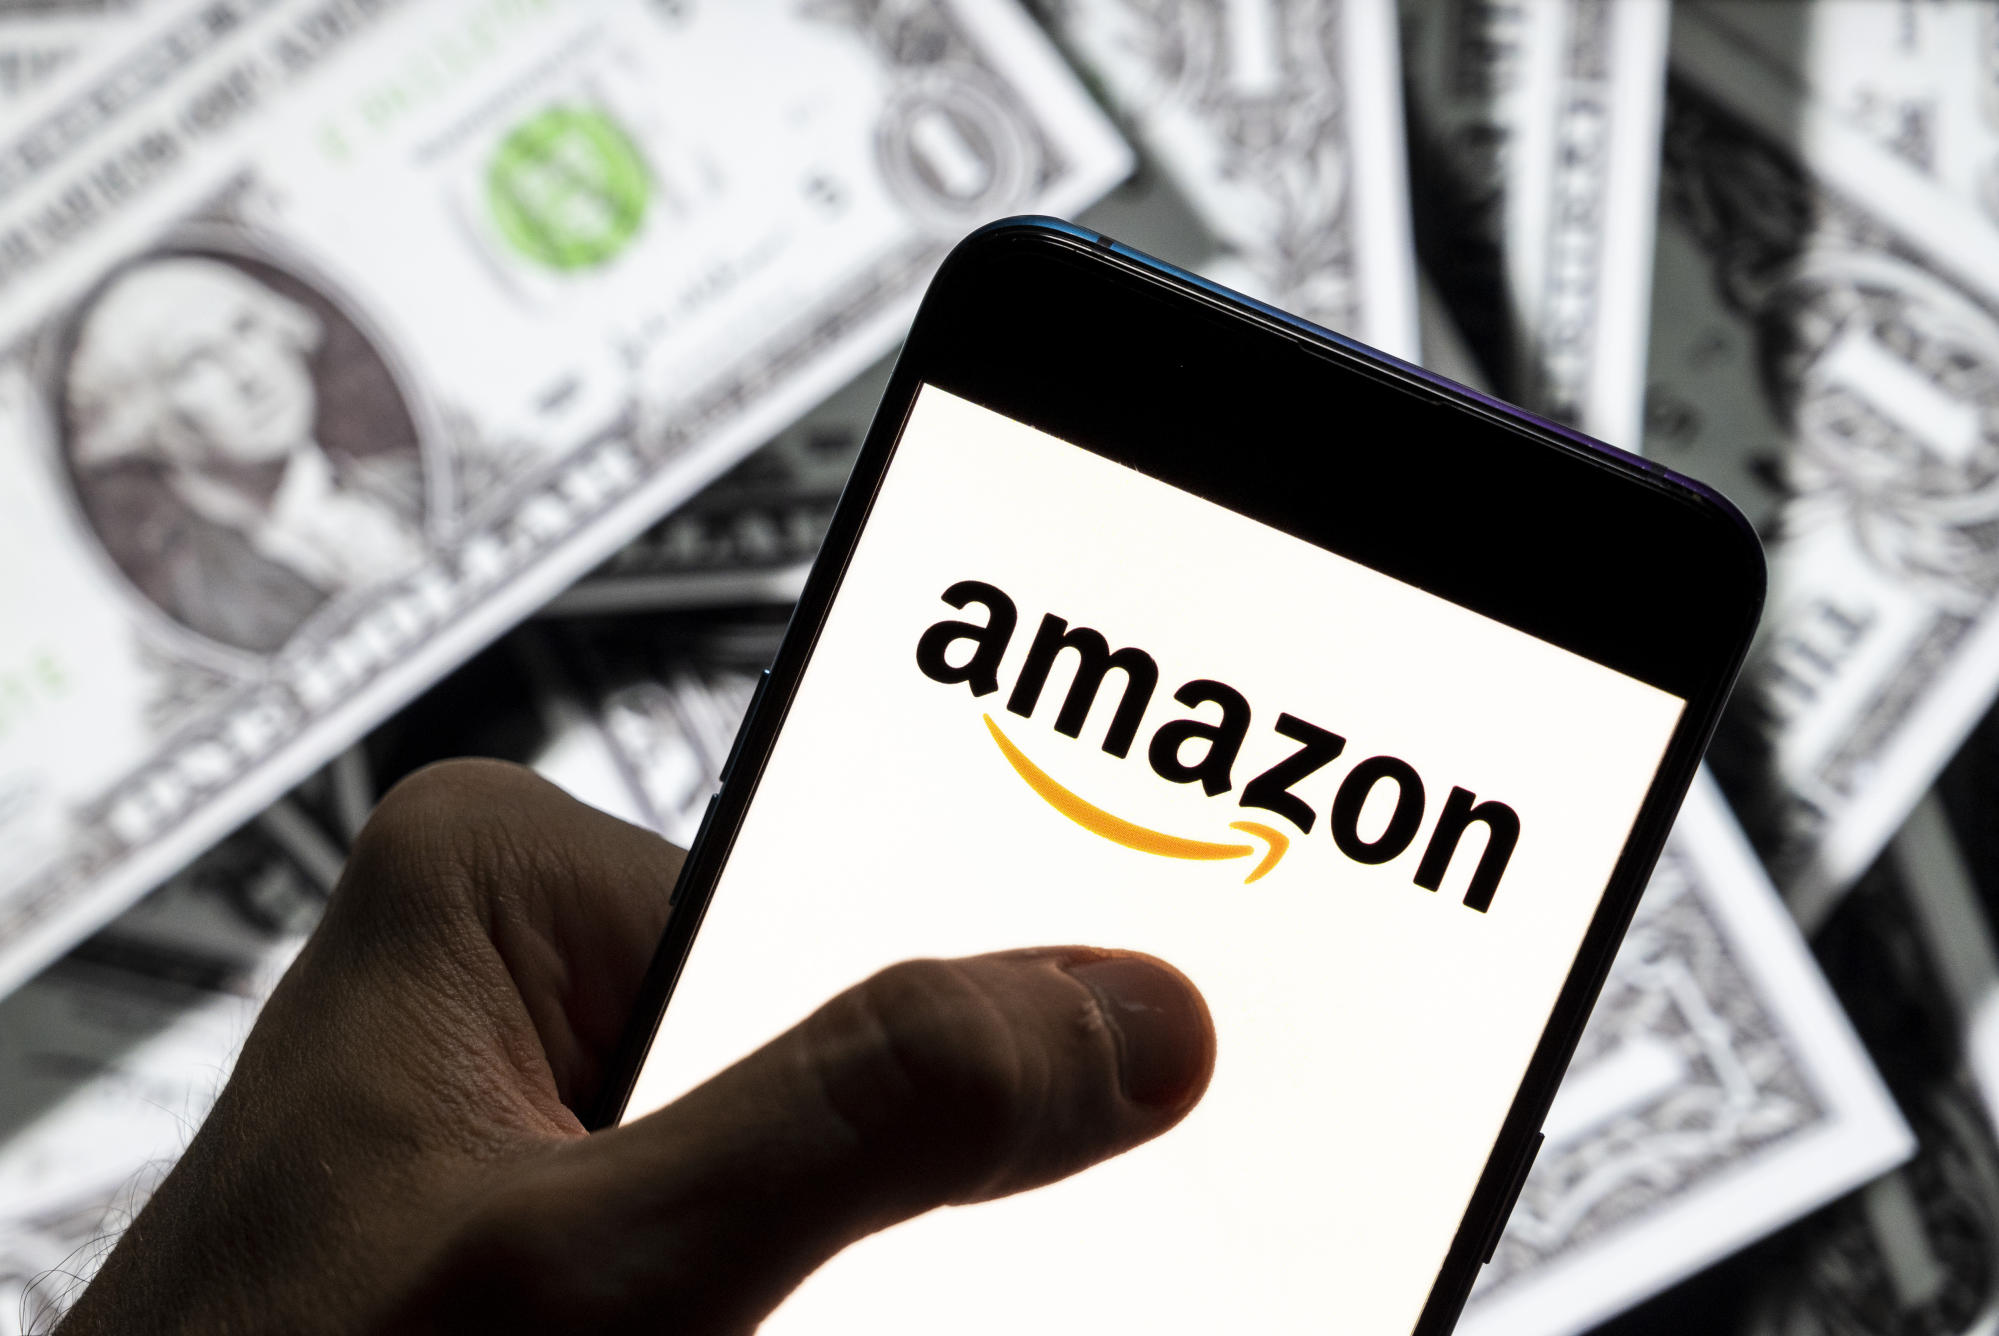 Amazon shares hit record high after blowout earnings results – Yahoo Finance